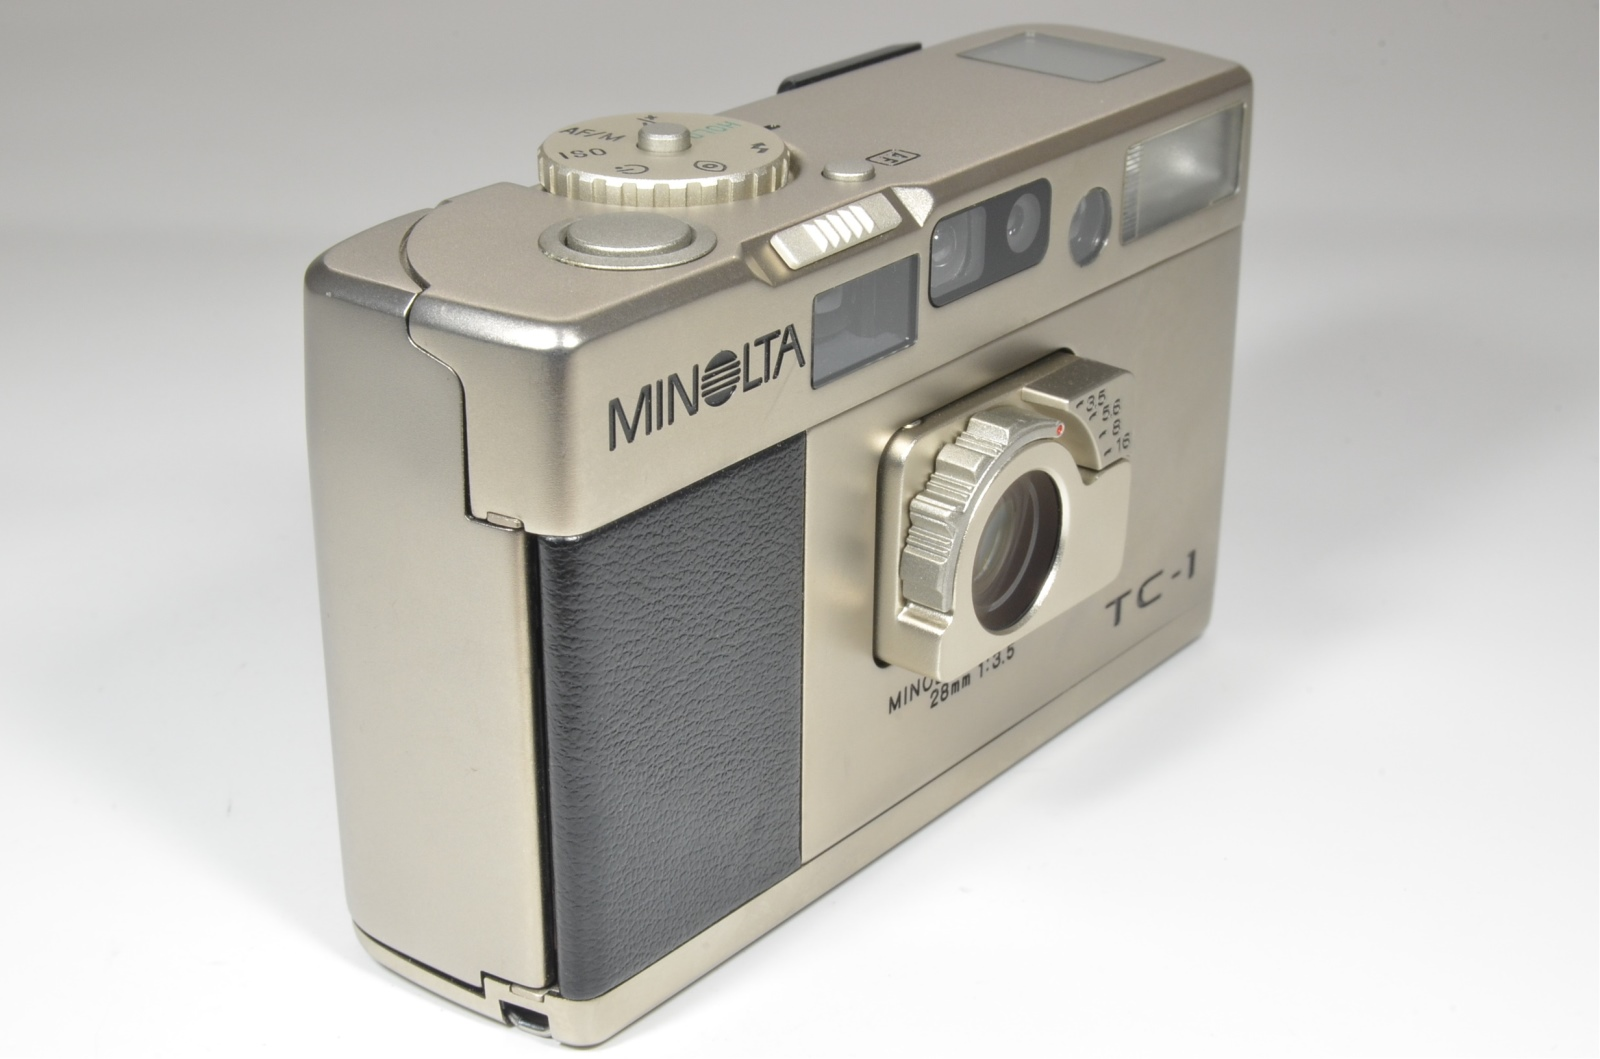 minolta tc-1 film camera in boxed